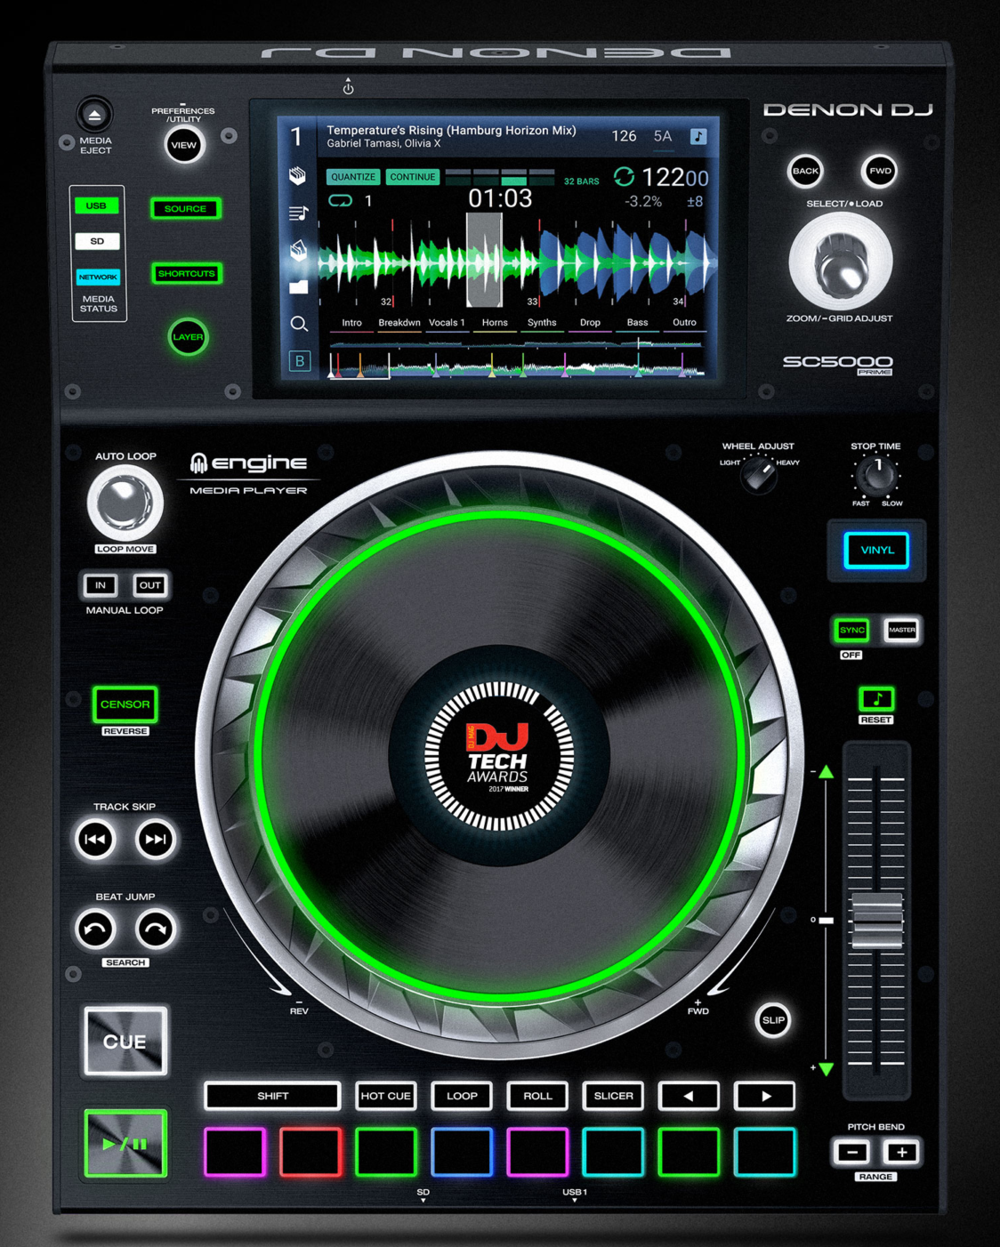 WHAT? The best parts of the S8, combined with the best parts of a CDJ, in a totally STANDALONE package? They really made something special here.